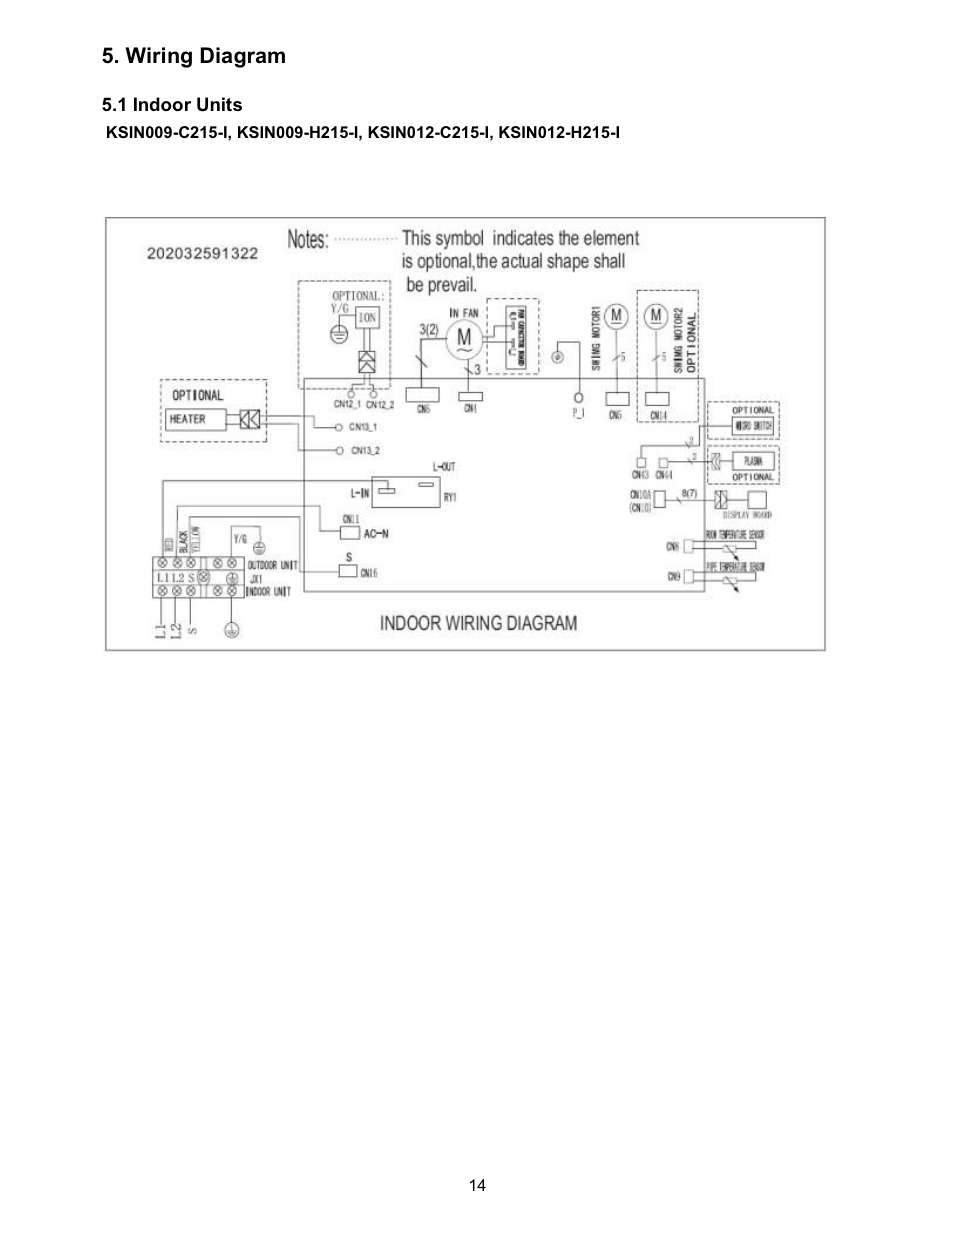 hight resolution of wiring diagram klimaire ksin series service manual user manual arcoaire parts diagram klimaire wiring diagram